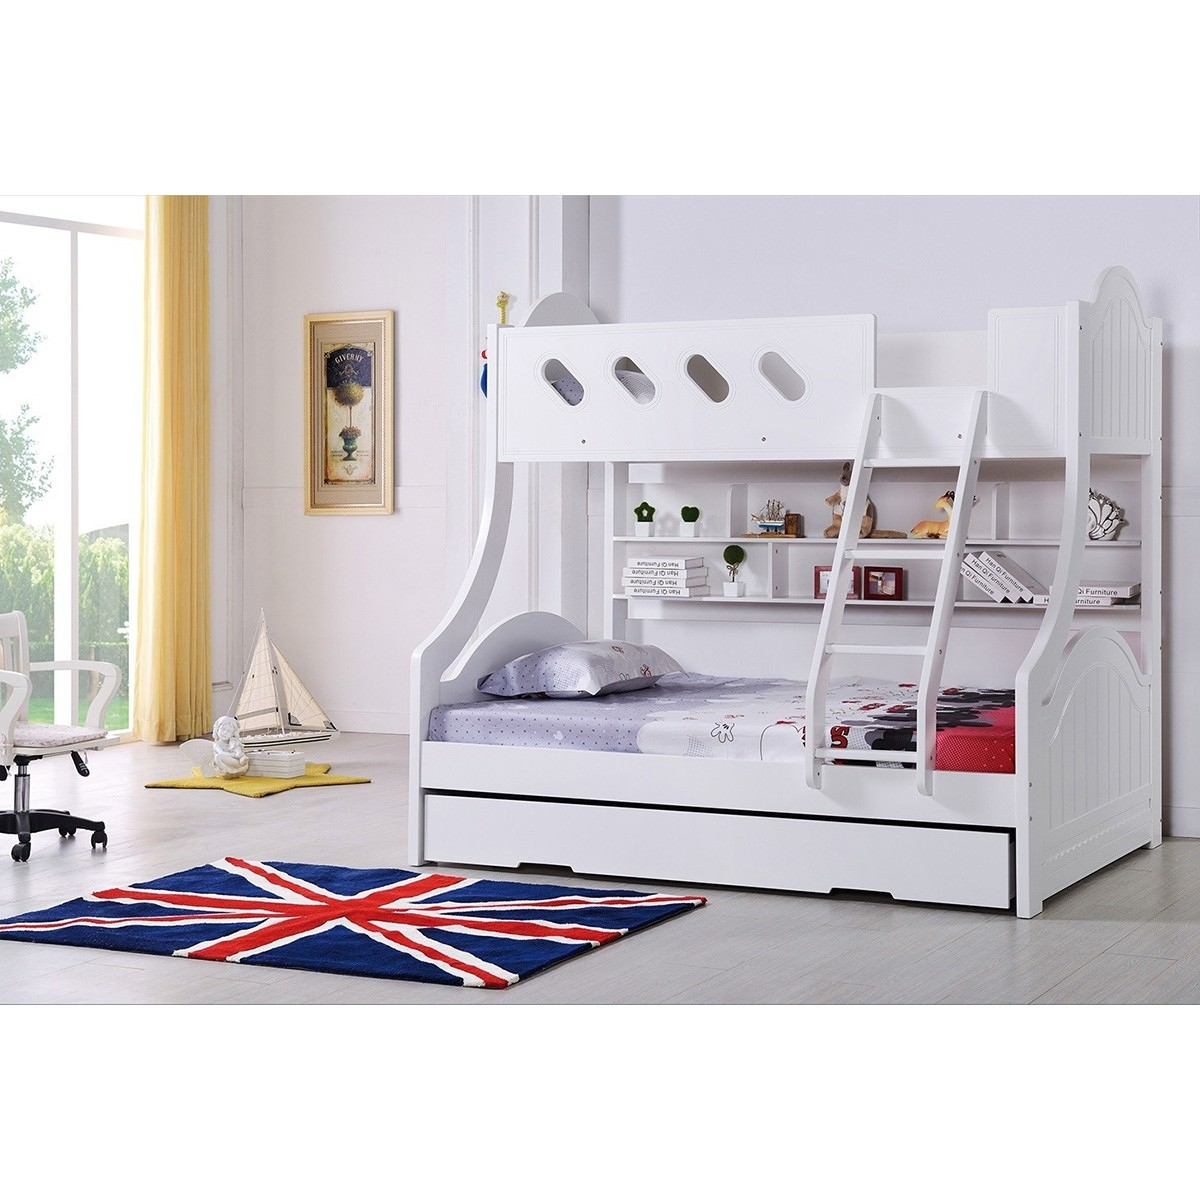 Cloudy Trio Bunk Bed with Single Trundle - White